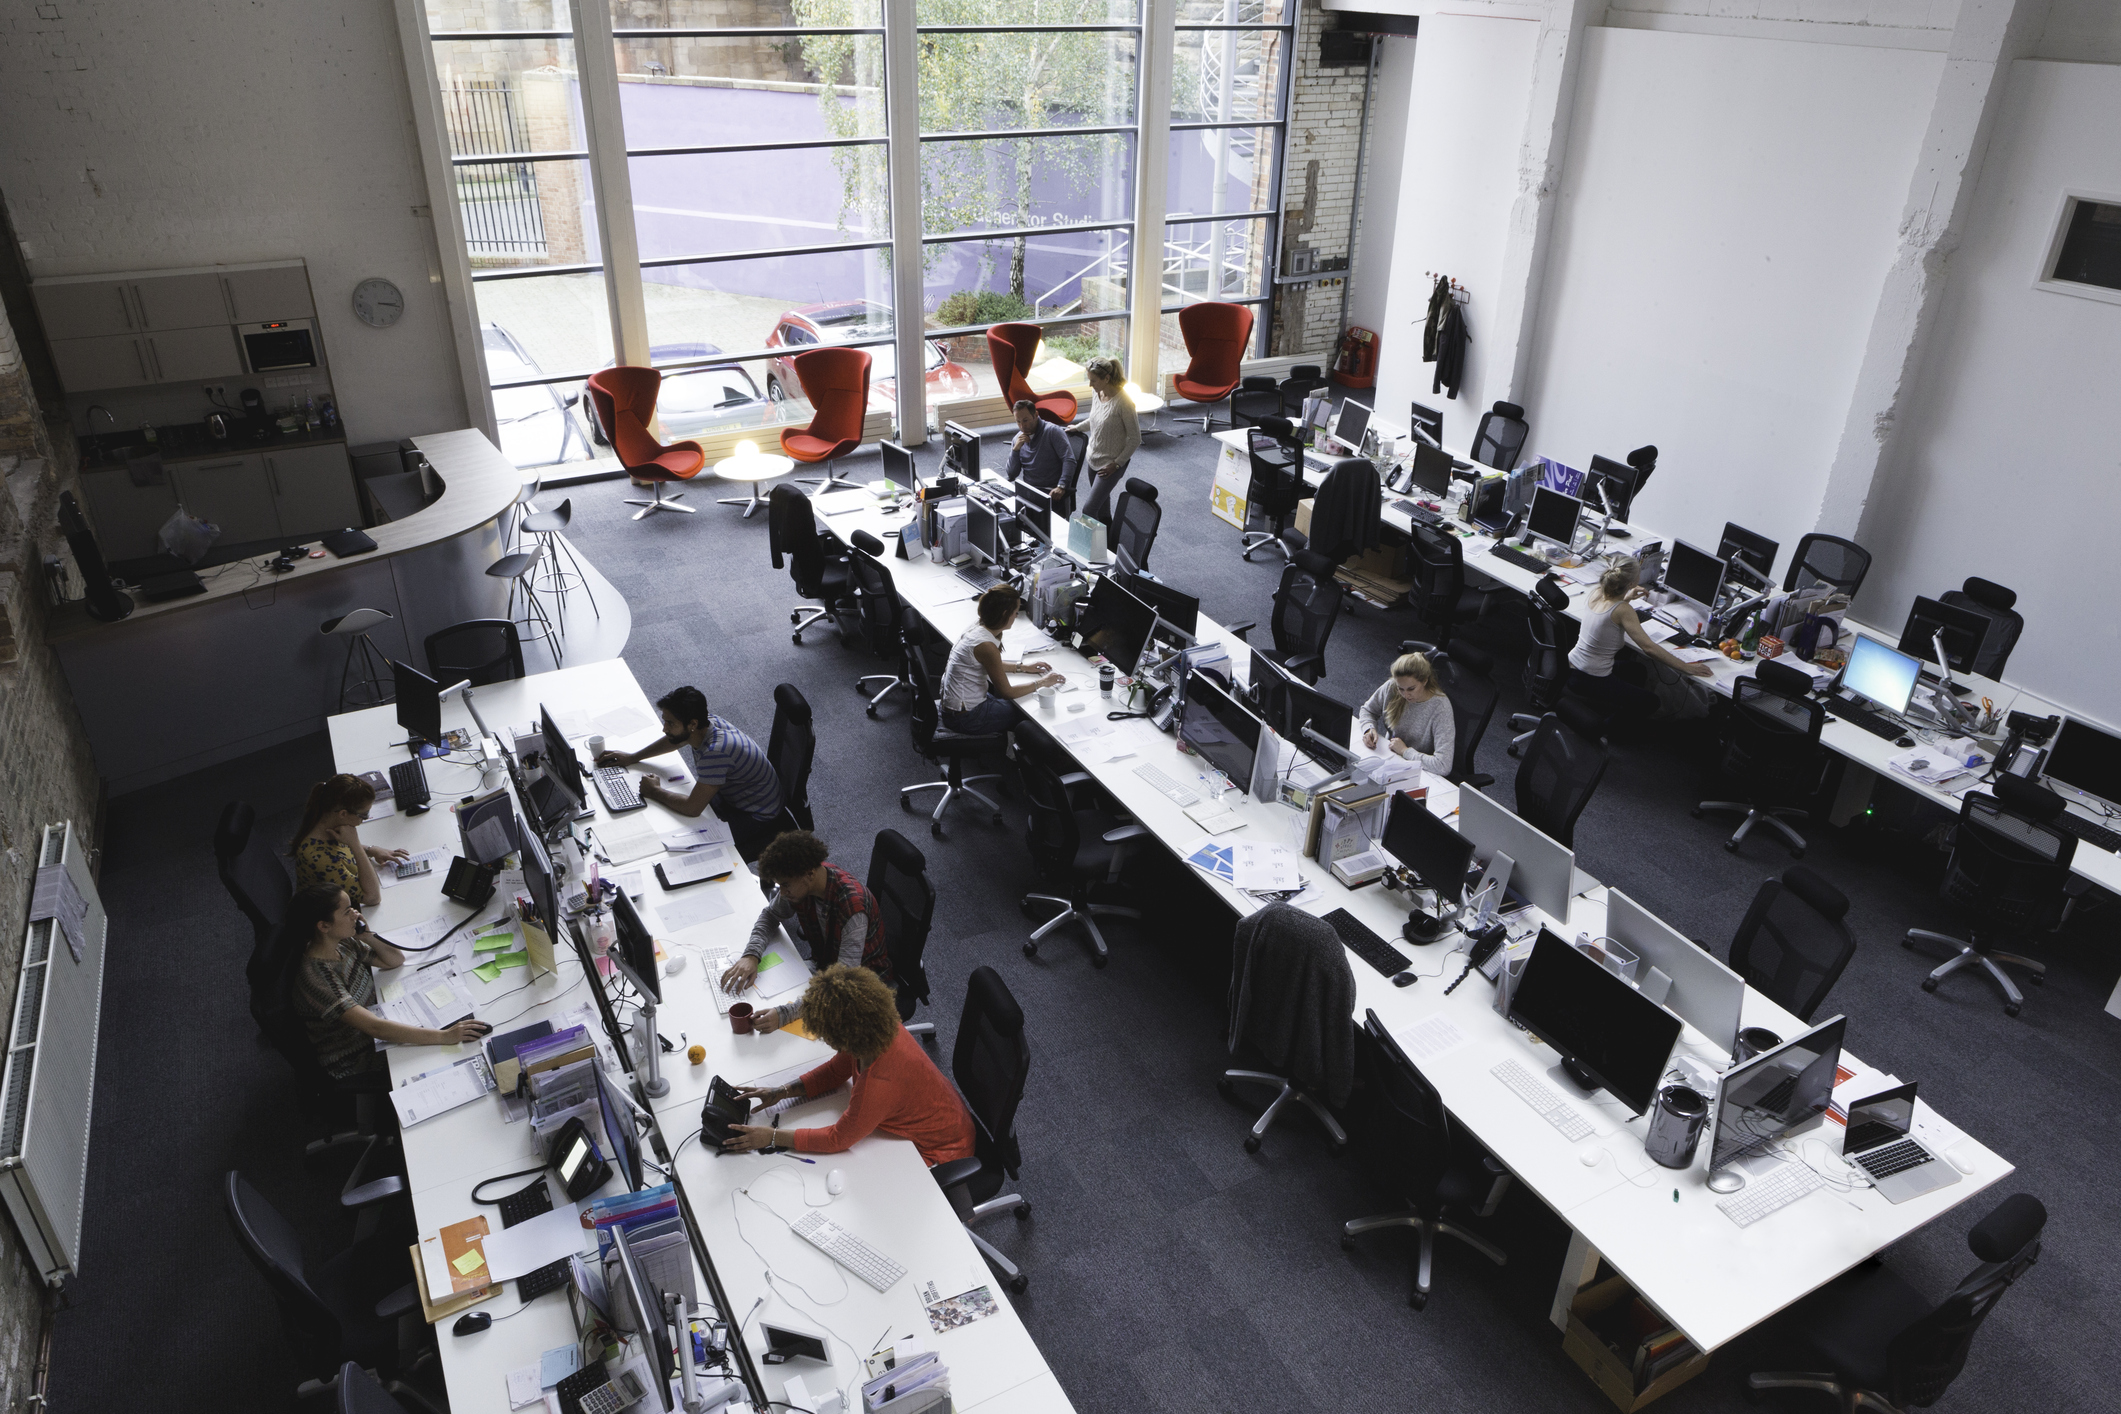 A horizontal image of a large office space shot from above. 10 office workers can be seen below. There are three large tables spread out across the room with multiple workstations.